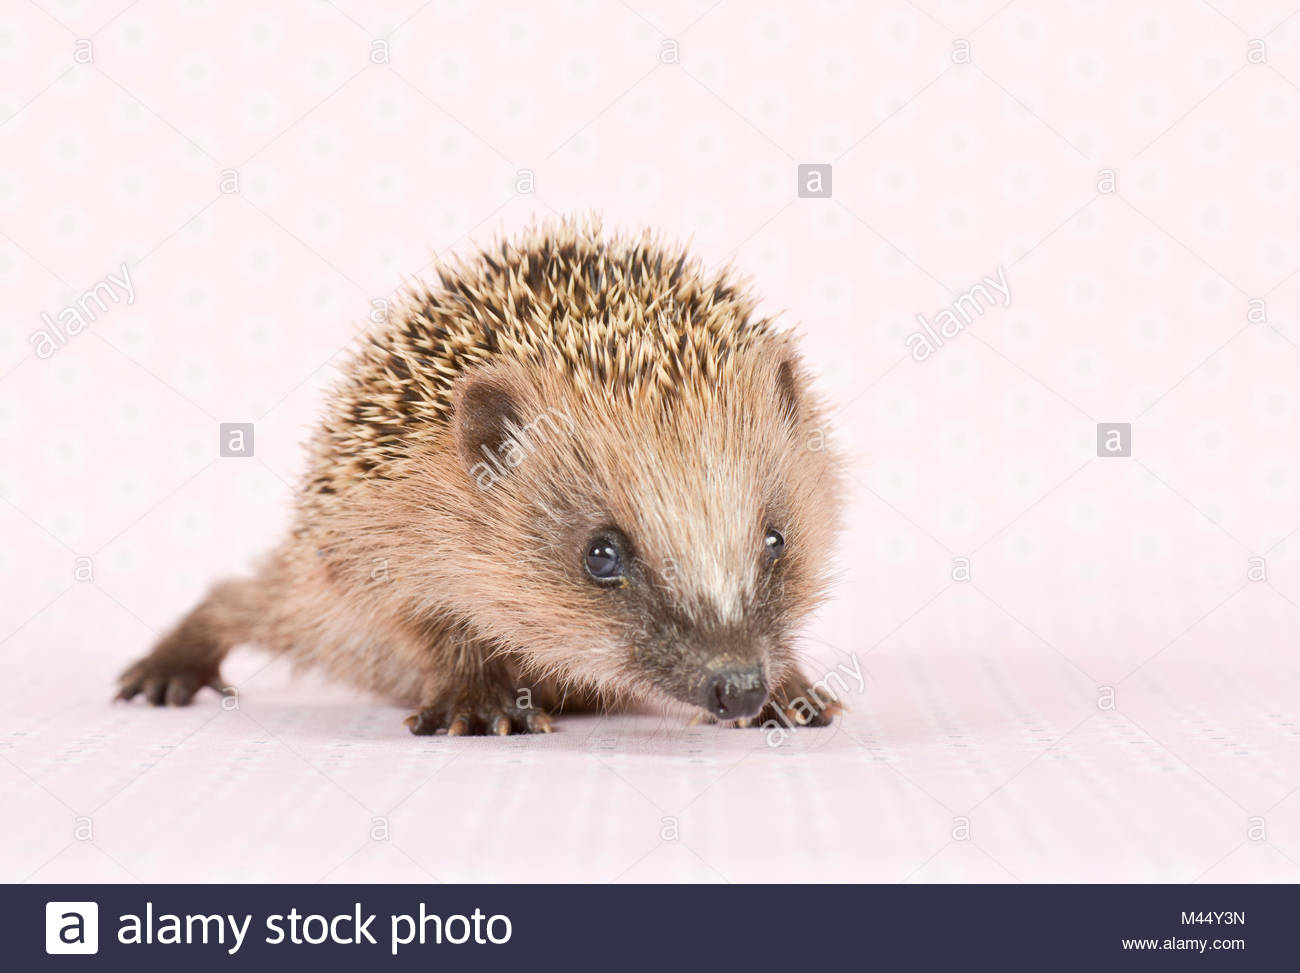 European Hedgehog (Erinaceus europaeus). Young (4 weeks old), walking. Studio picture, seen against a pink background. - Stock Image